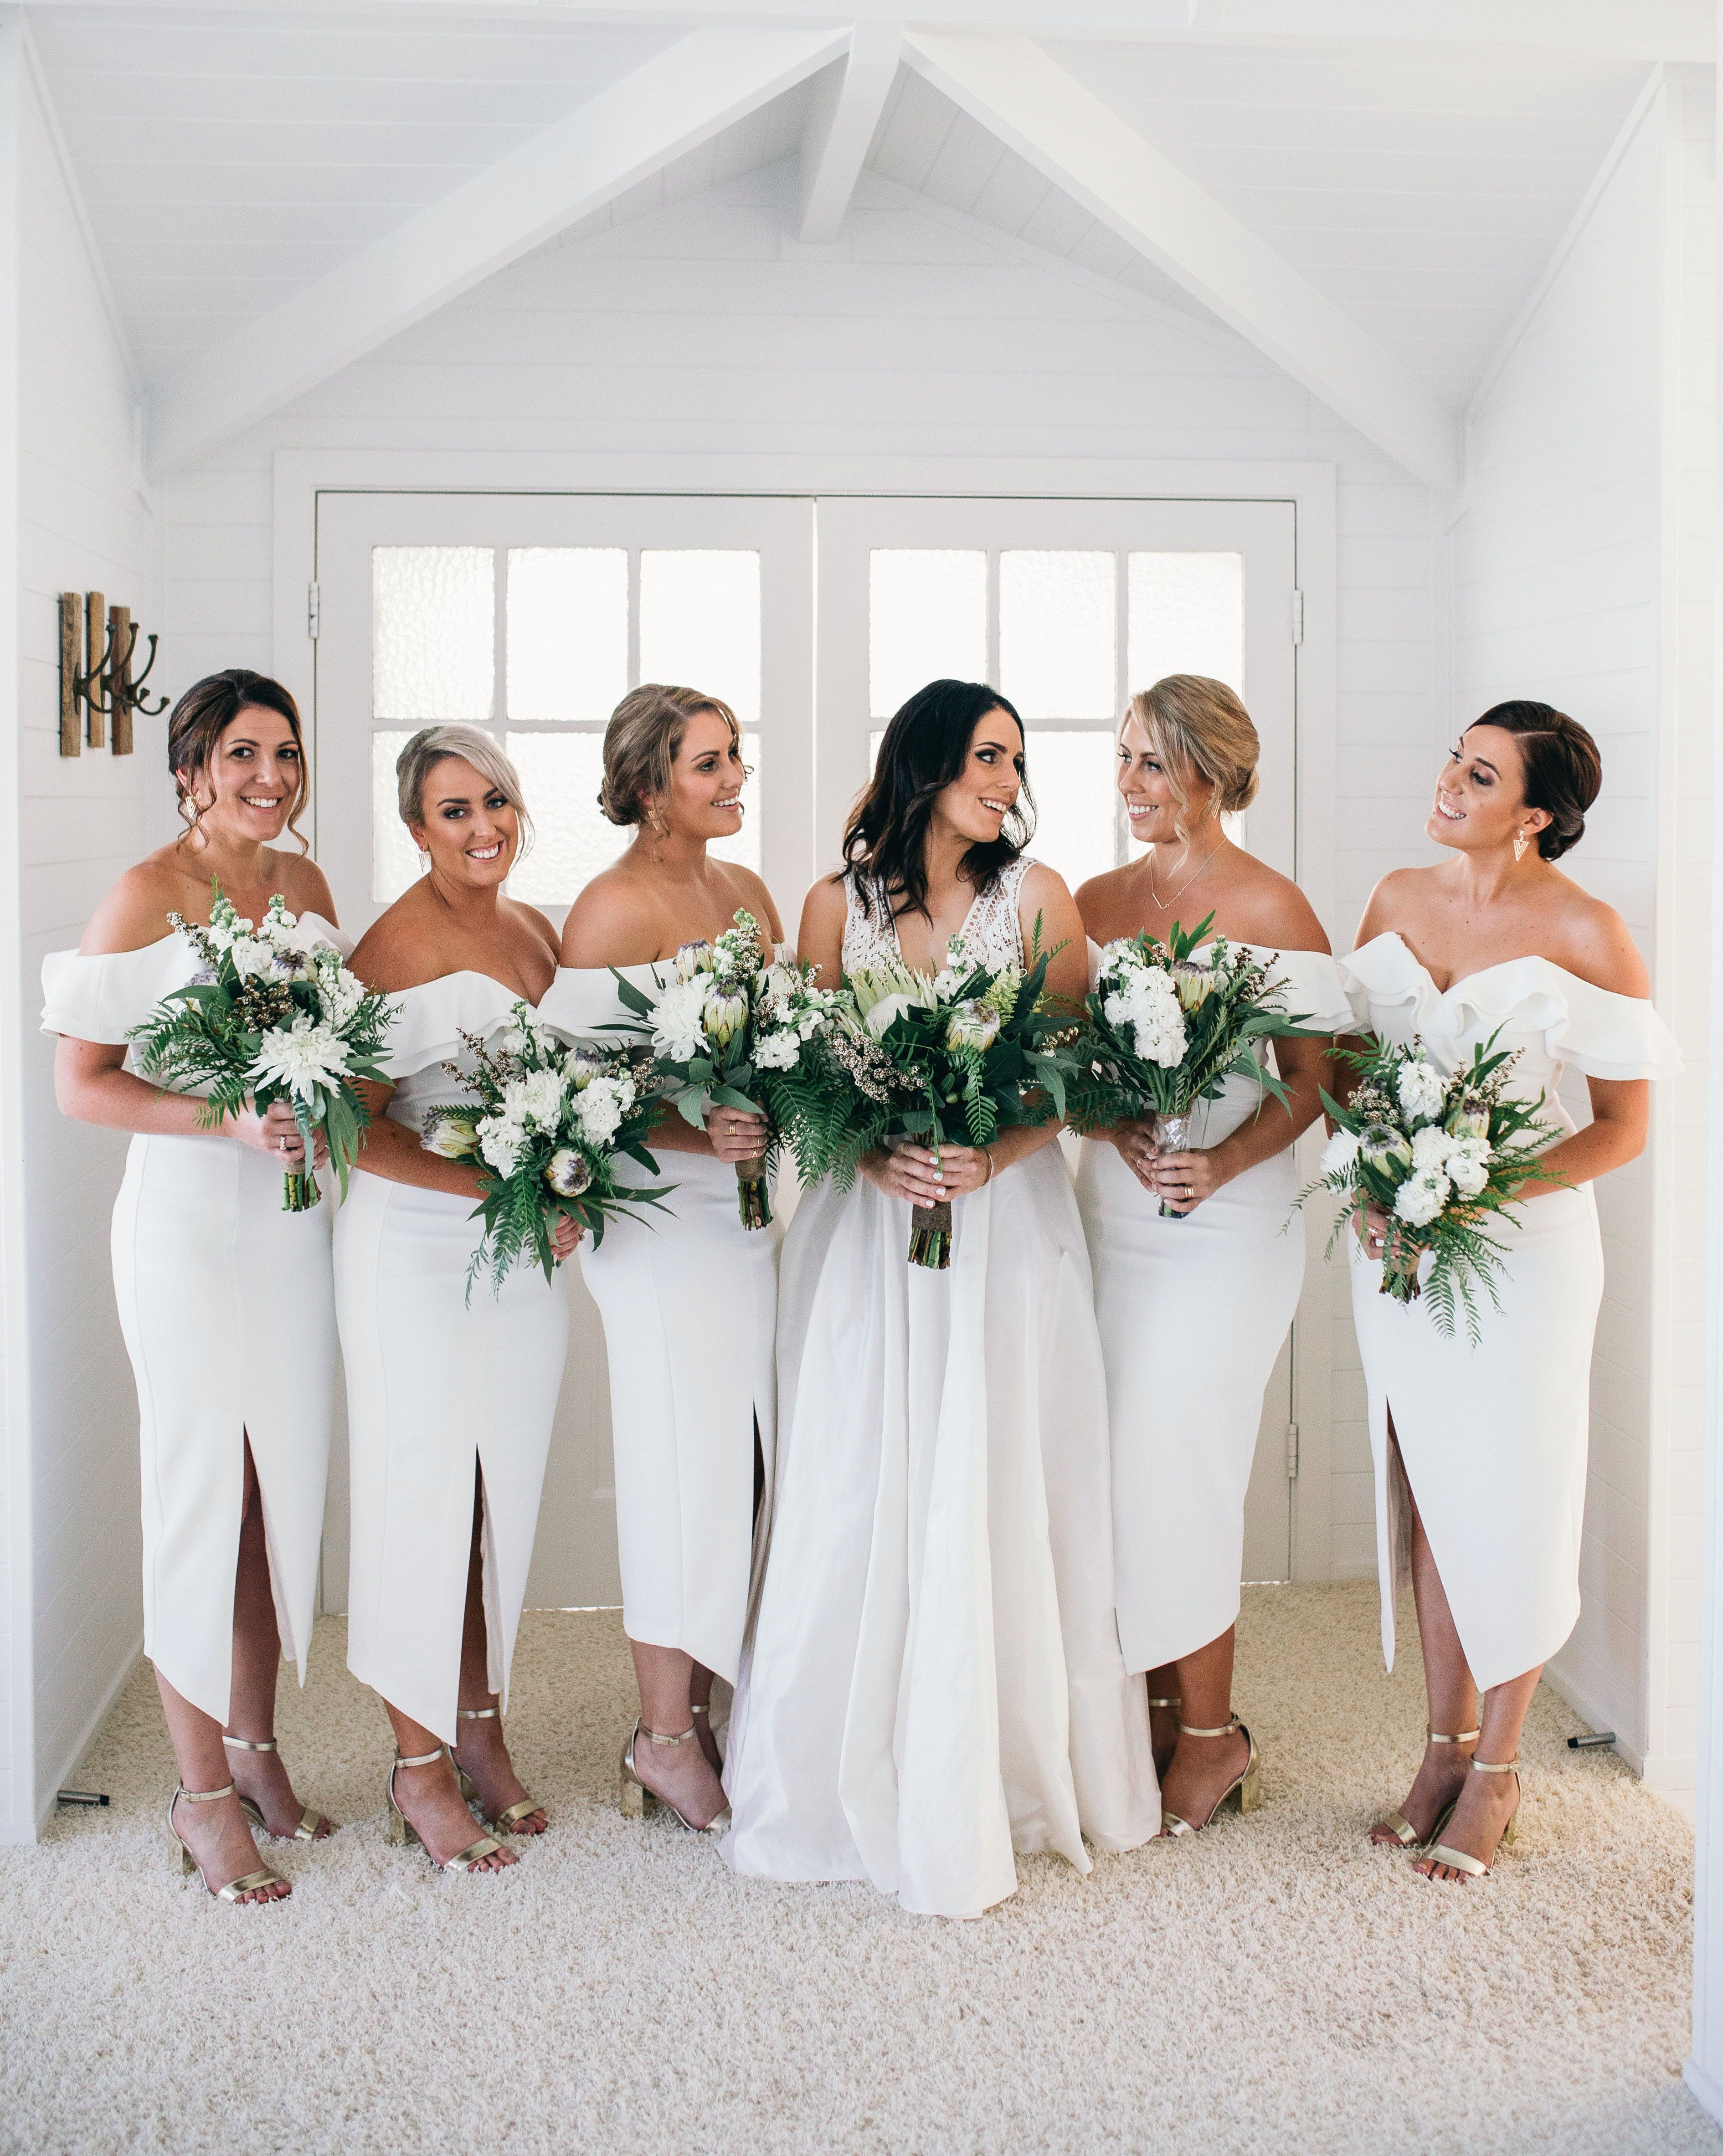 38 Looks That Prove Bridesmaids Dresses Can Be Chic Cheap Bridesmaid Dresses Bridesmaid Dresses Bridesmaid [ 4732 x 3781 Pixel ]